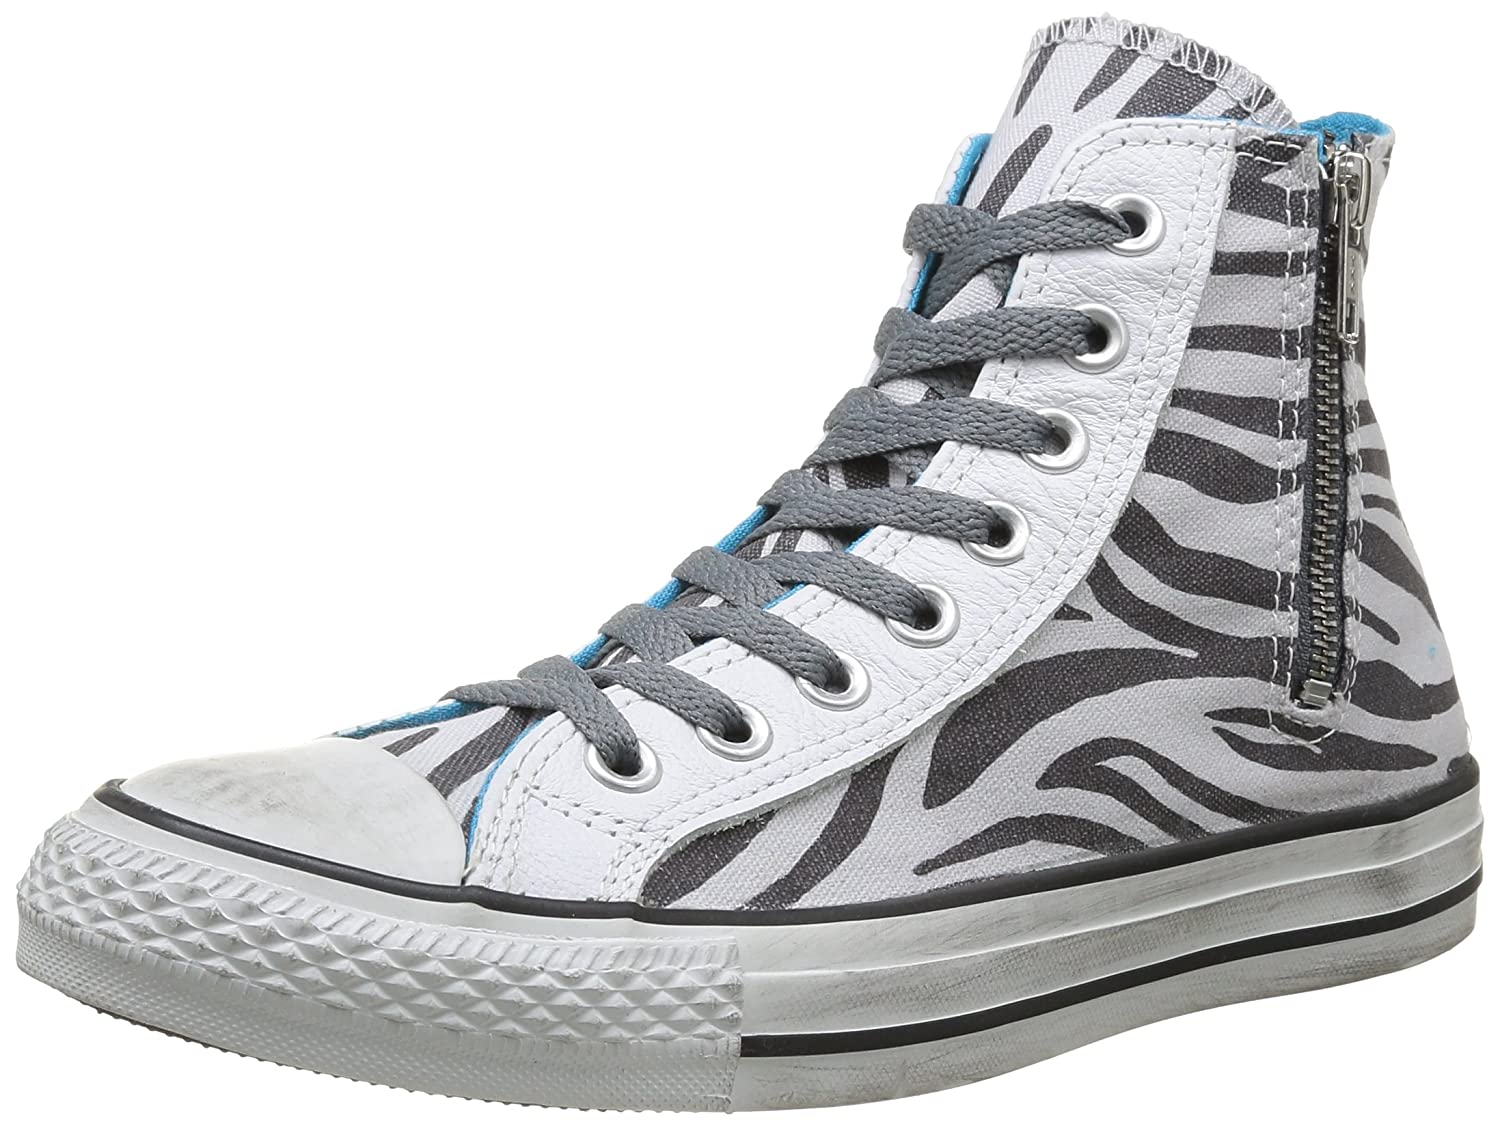 Converse All Star Hi Side Zip Canvas - Botines Mujer36 EU|Oyster Gray/Castlerock Zebra D